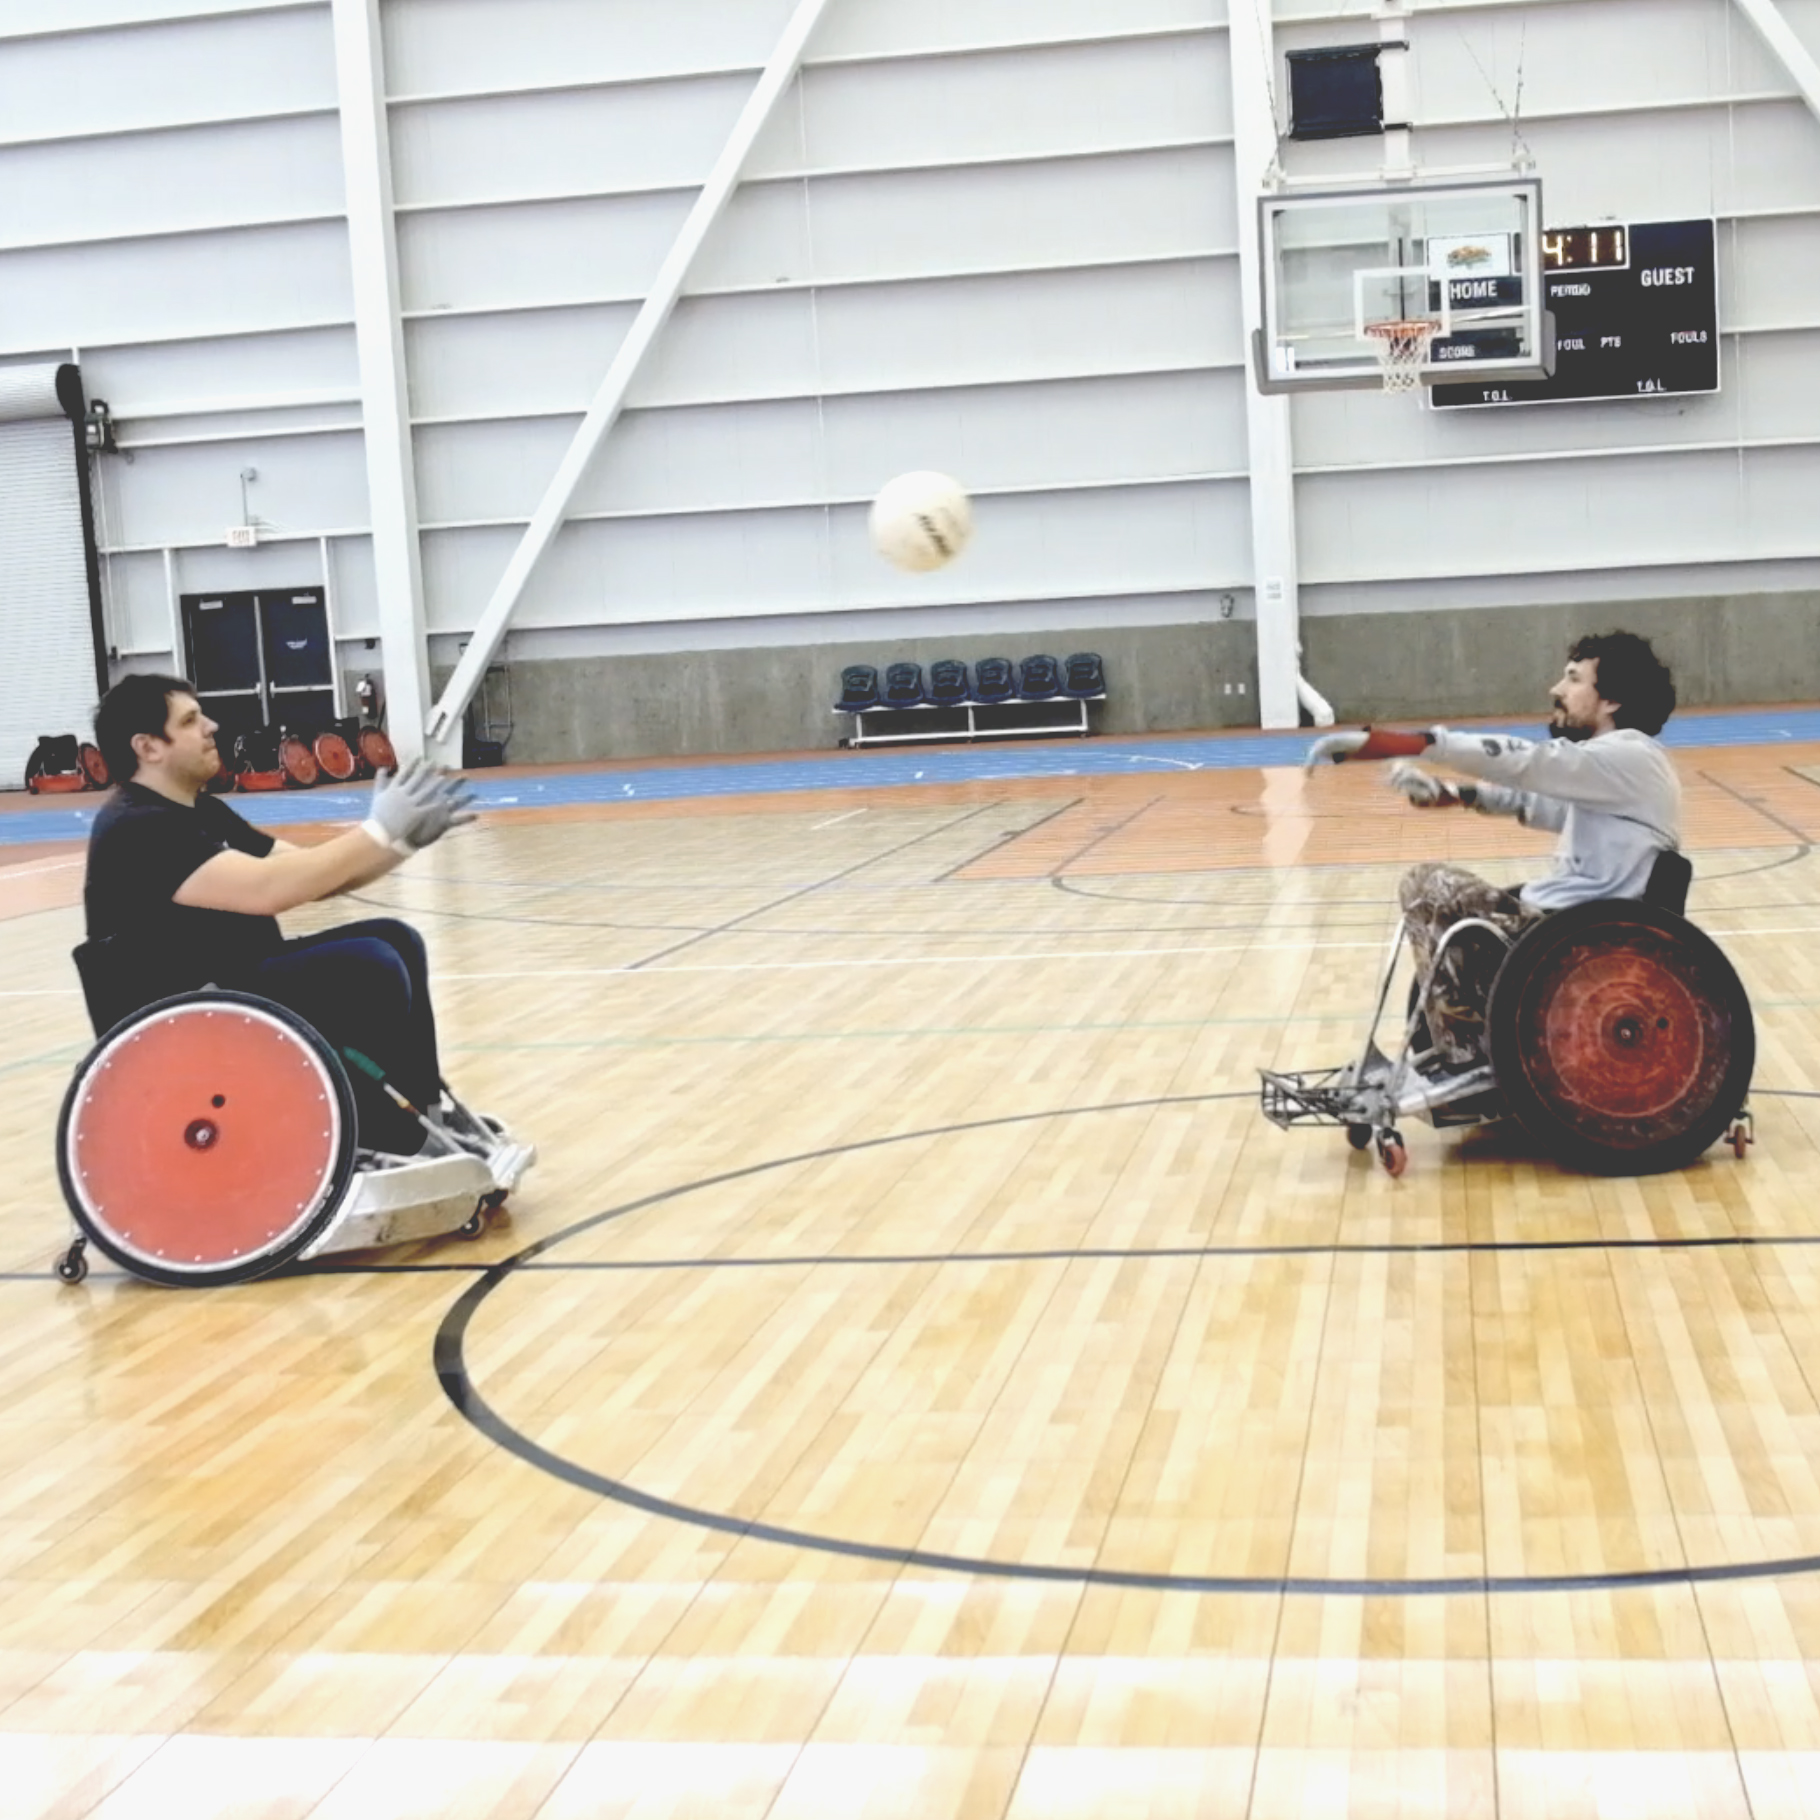 Learning How to Play Wheelchair Rugby